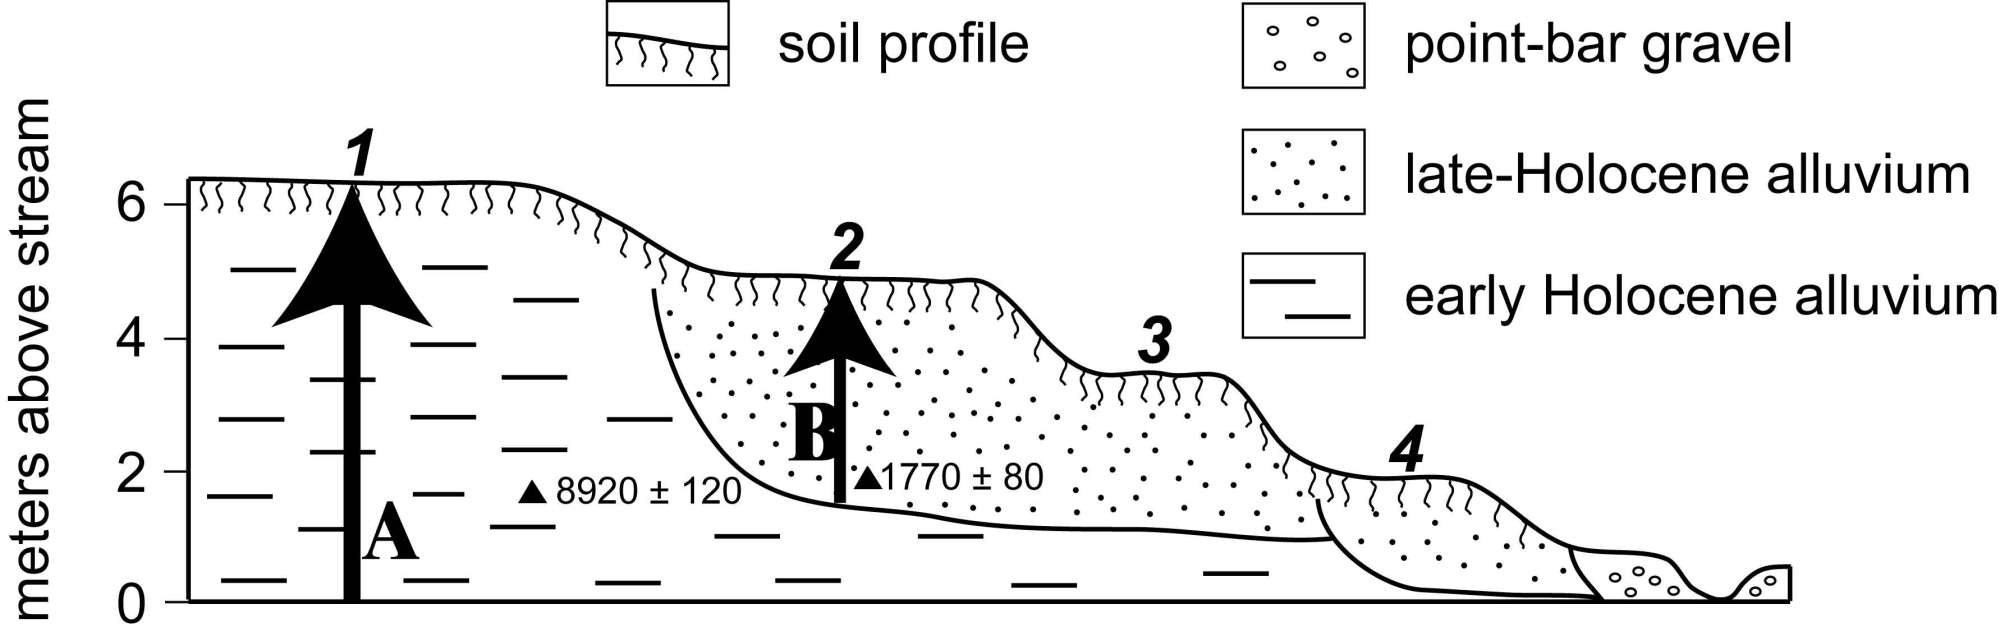 hight resolution of schematic cross section of terraces and terrace fills along lower kings creek at the konza prairie biological station only terraces numbered 1 and 2 are